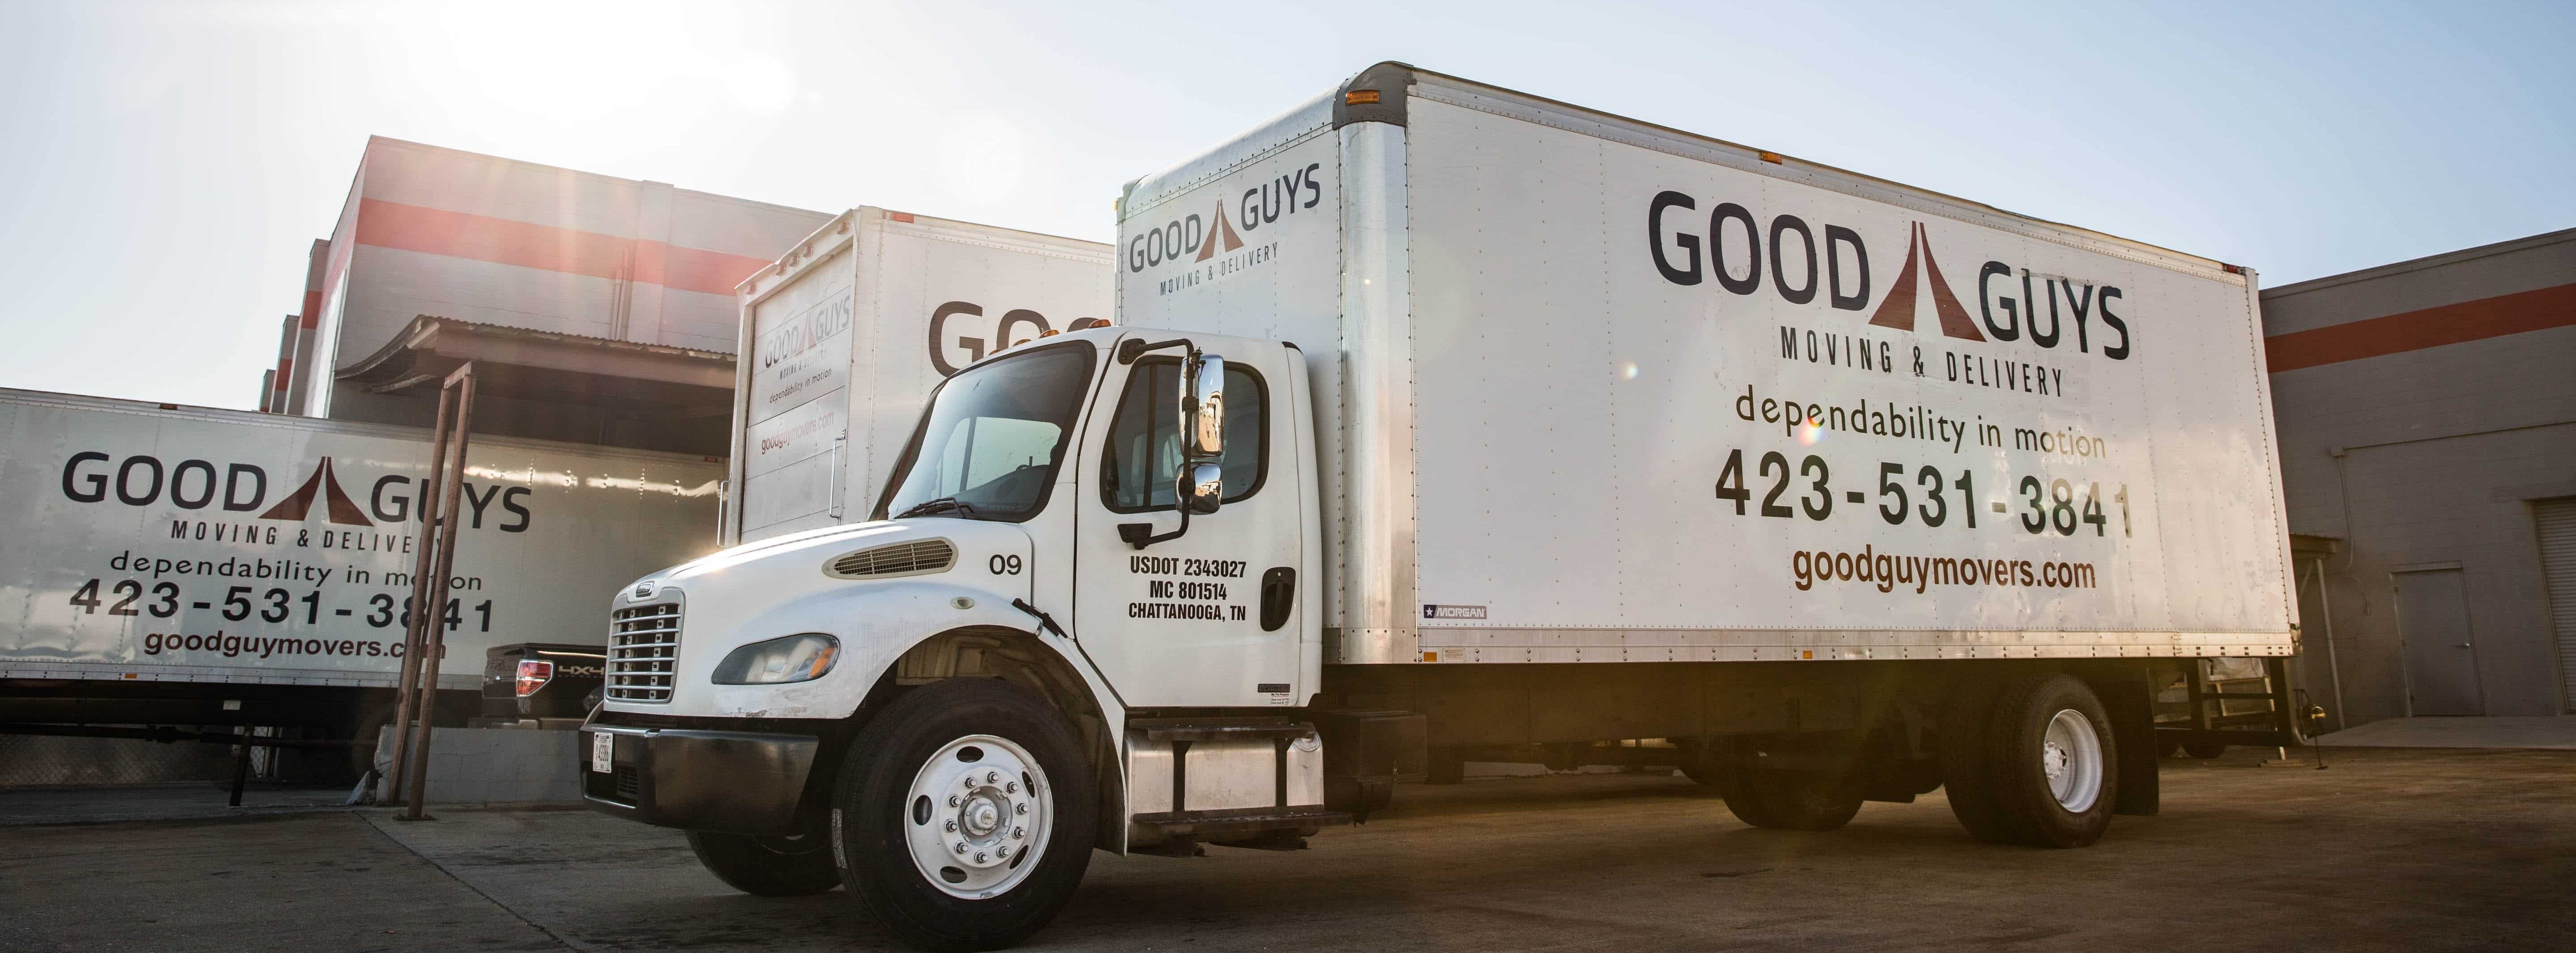 Good Guys Moving and Delivery 520 W 31st St, Chattanooga ...